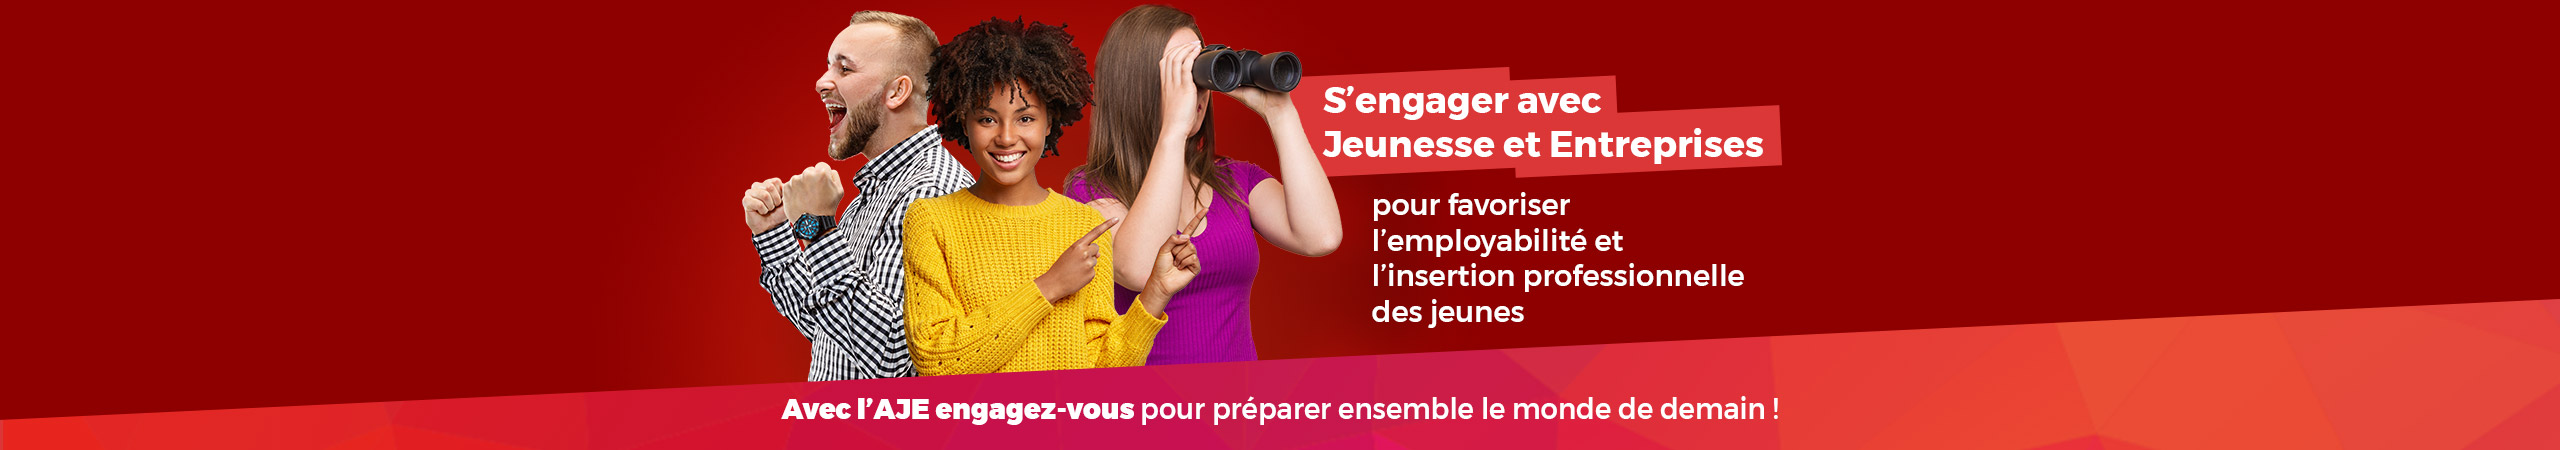 Slide-AJE-s-engager